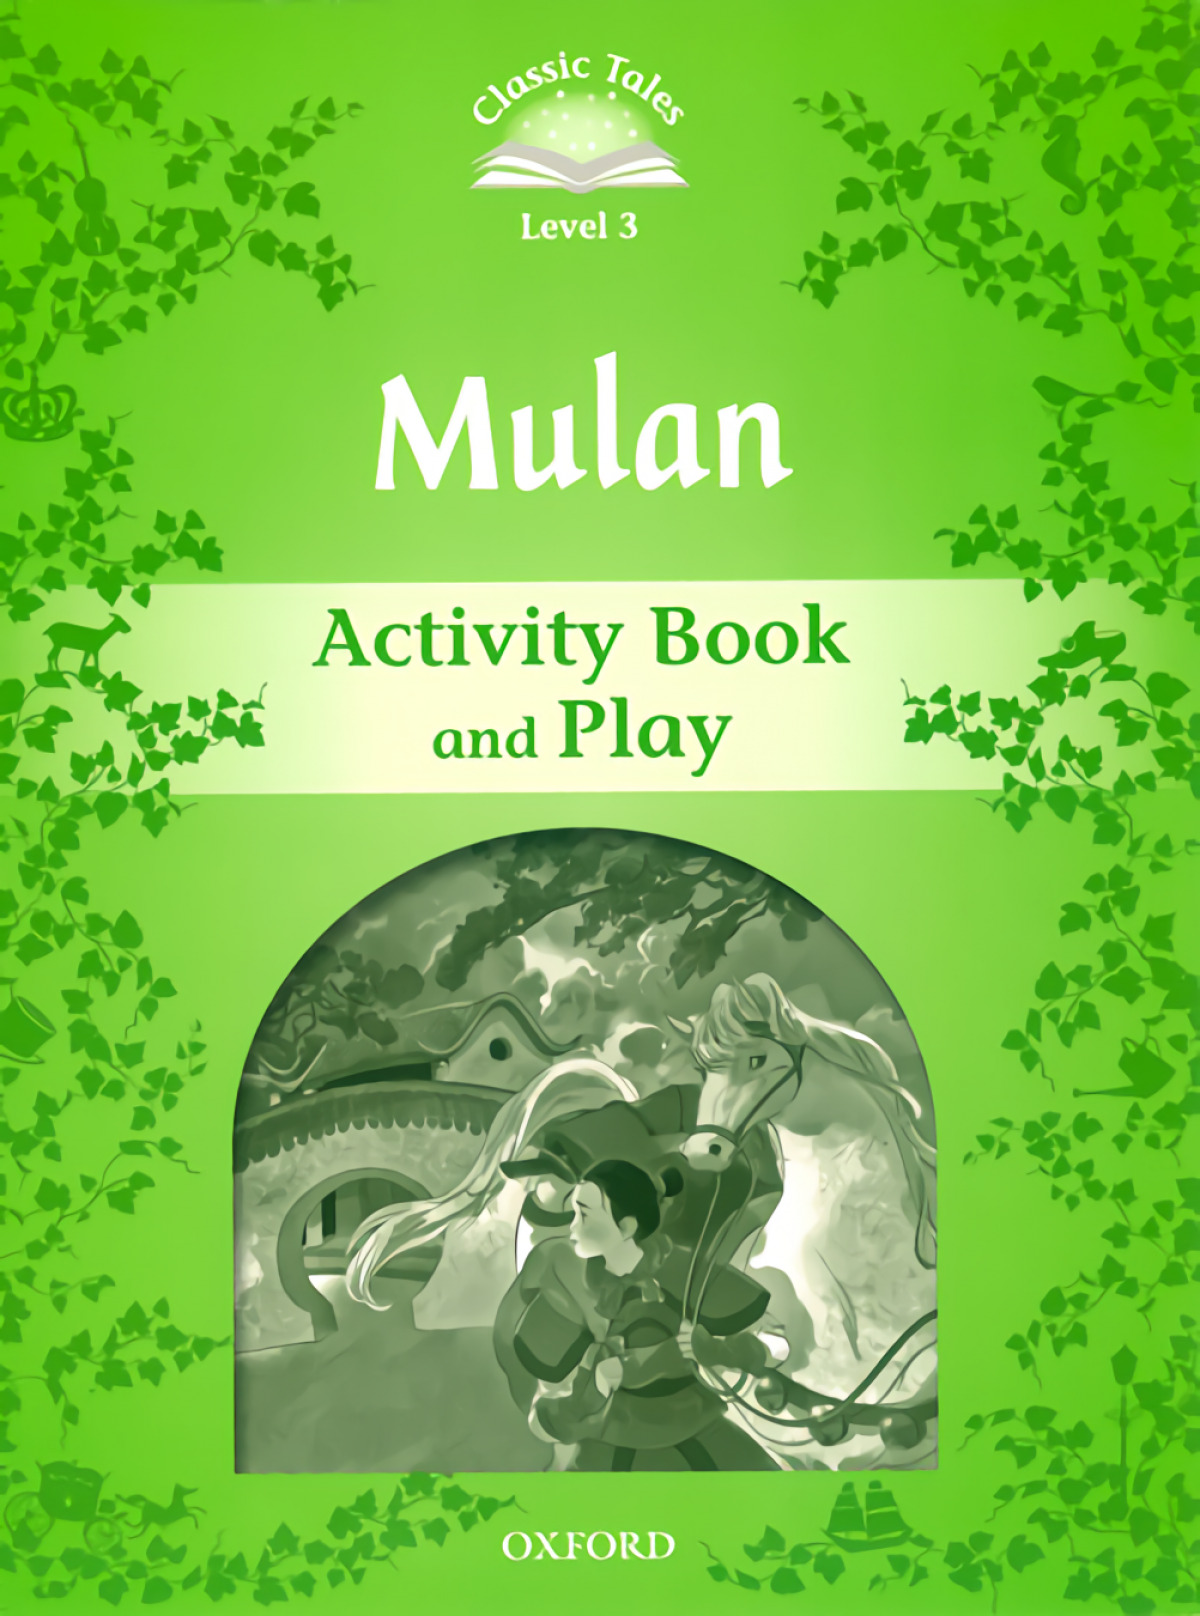 MULAN ACTIVITY BOOK. CLASSIC TALES LEVEL 3